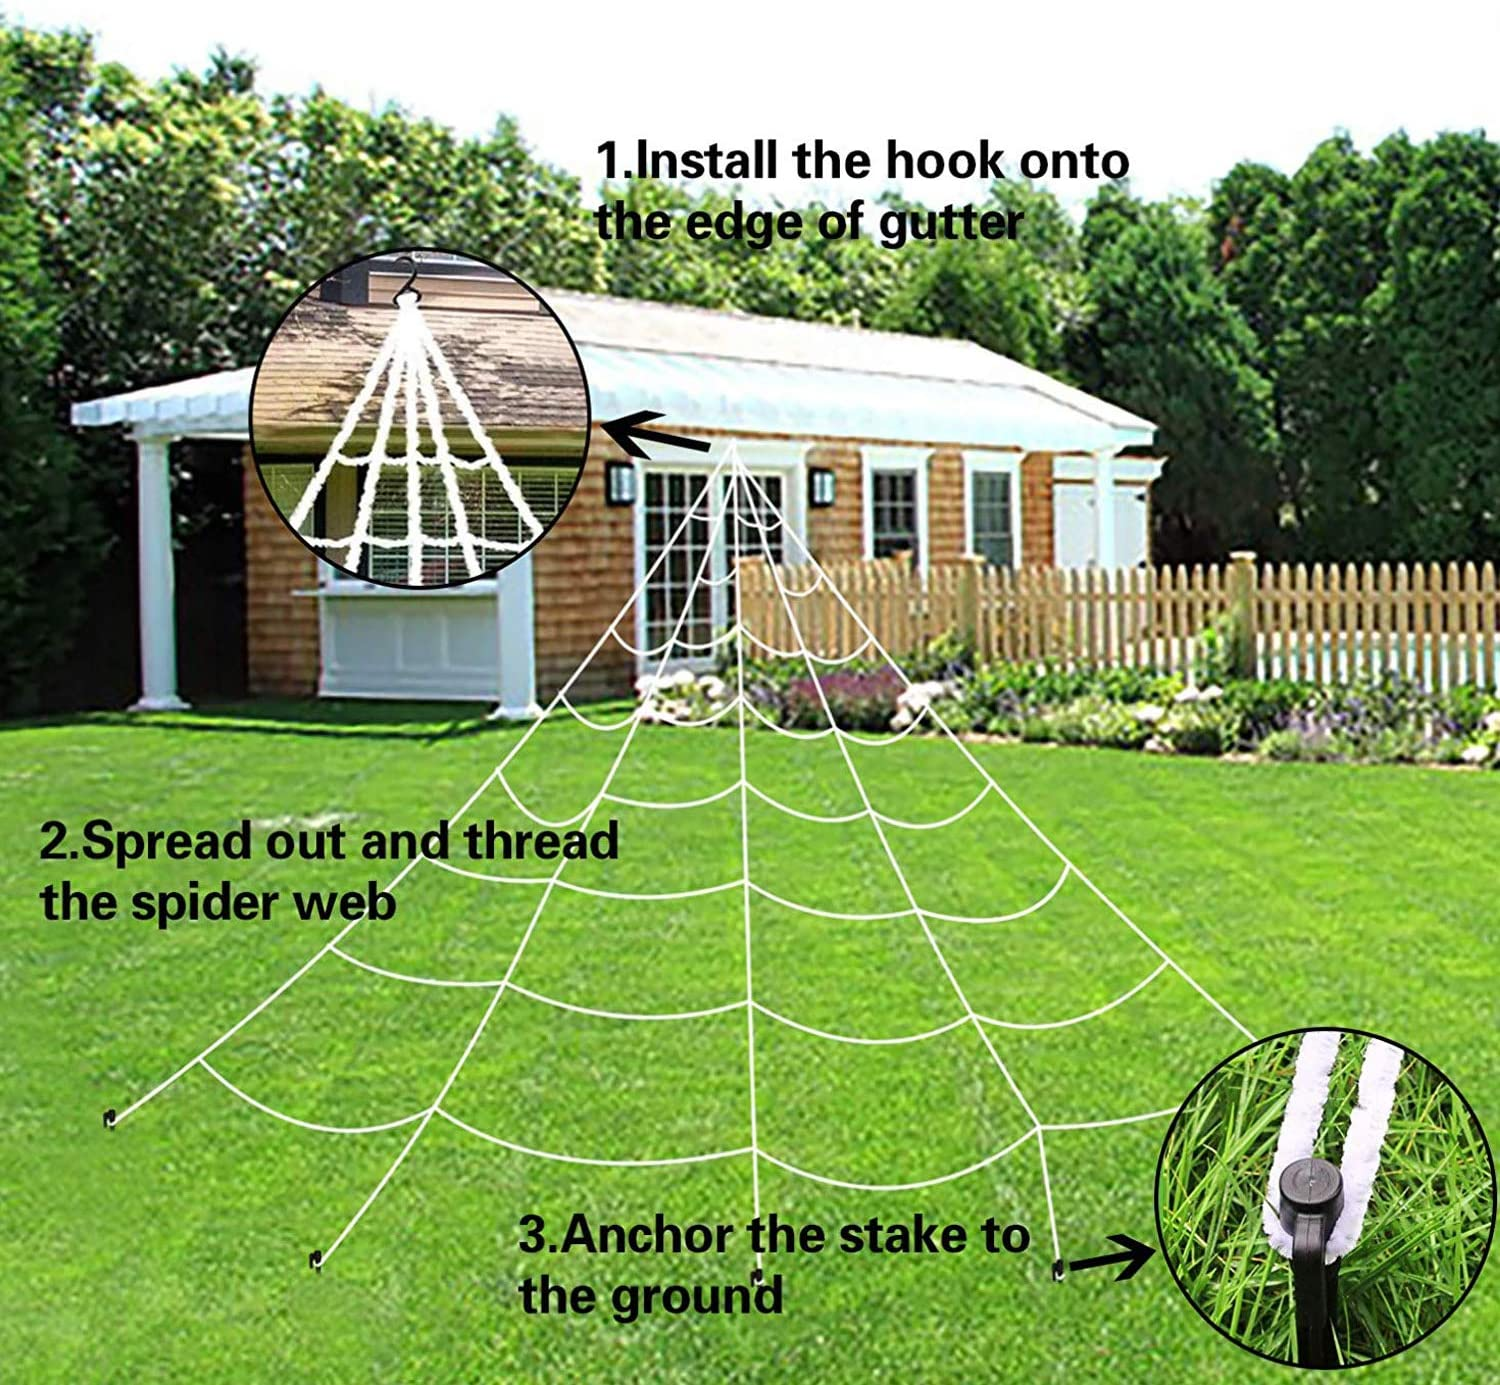 Halloween Giant Spider Web Super Stretch Cobweb Set,Halloween Trick Or Treat Party /& Home Decorations for Indoor//Outdoor Yard 0.7oz Super Stretch Cobweb Terrify Your Neighbors 23 Feet Spider Web